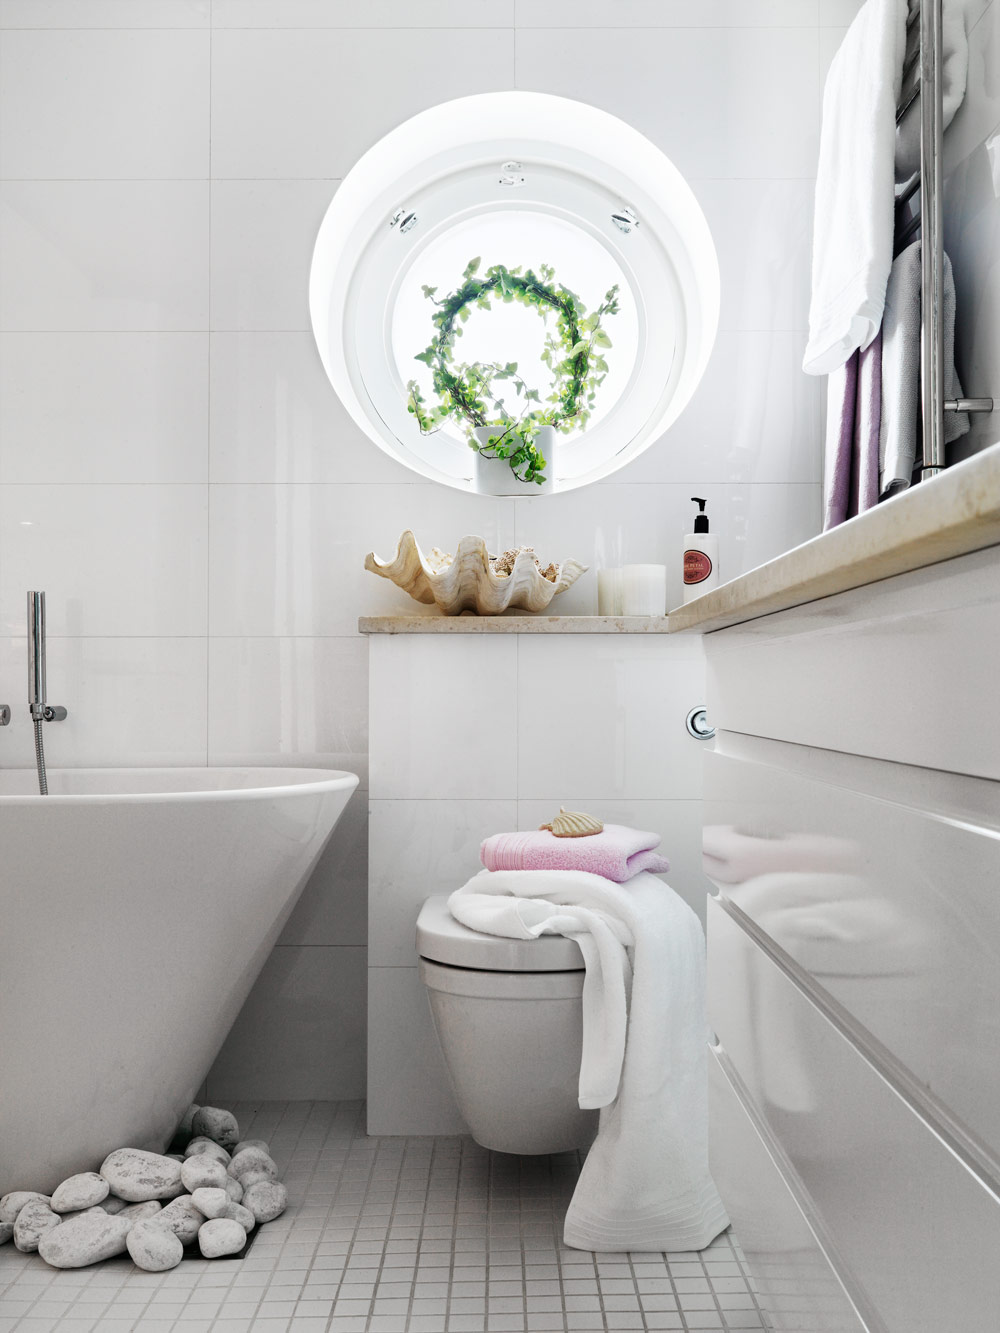 Stylish small bathroom with an unusual decor digsdigs for Compact bathroom design ideas